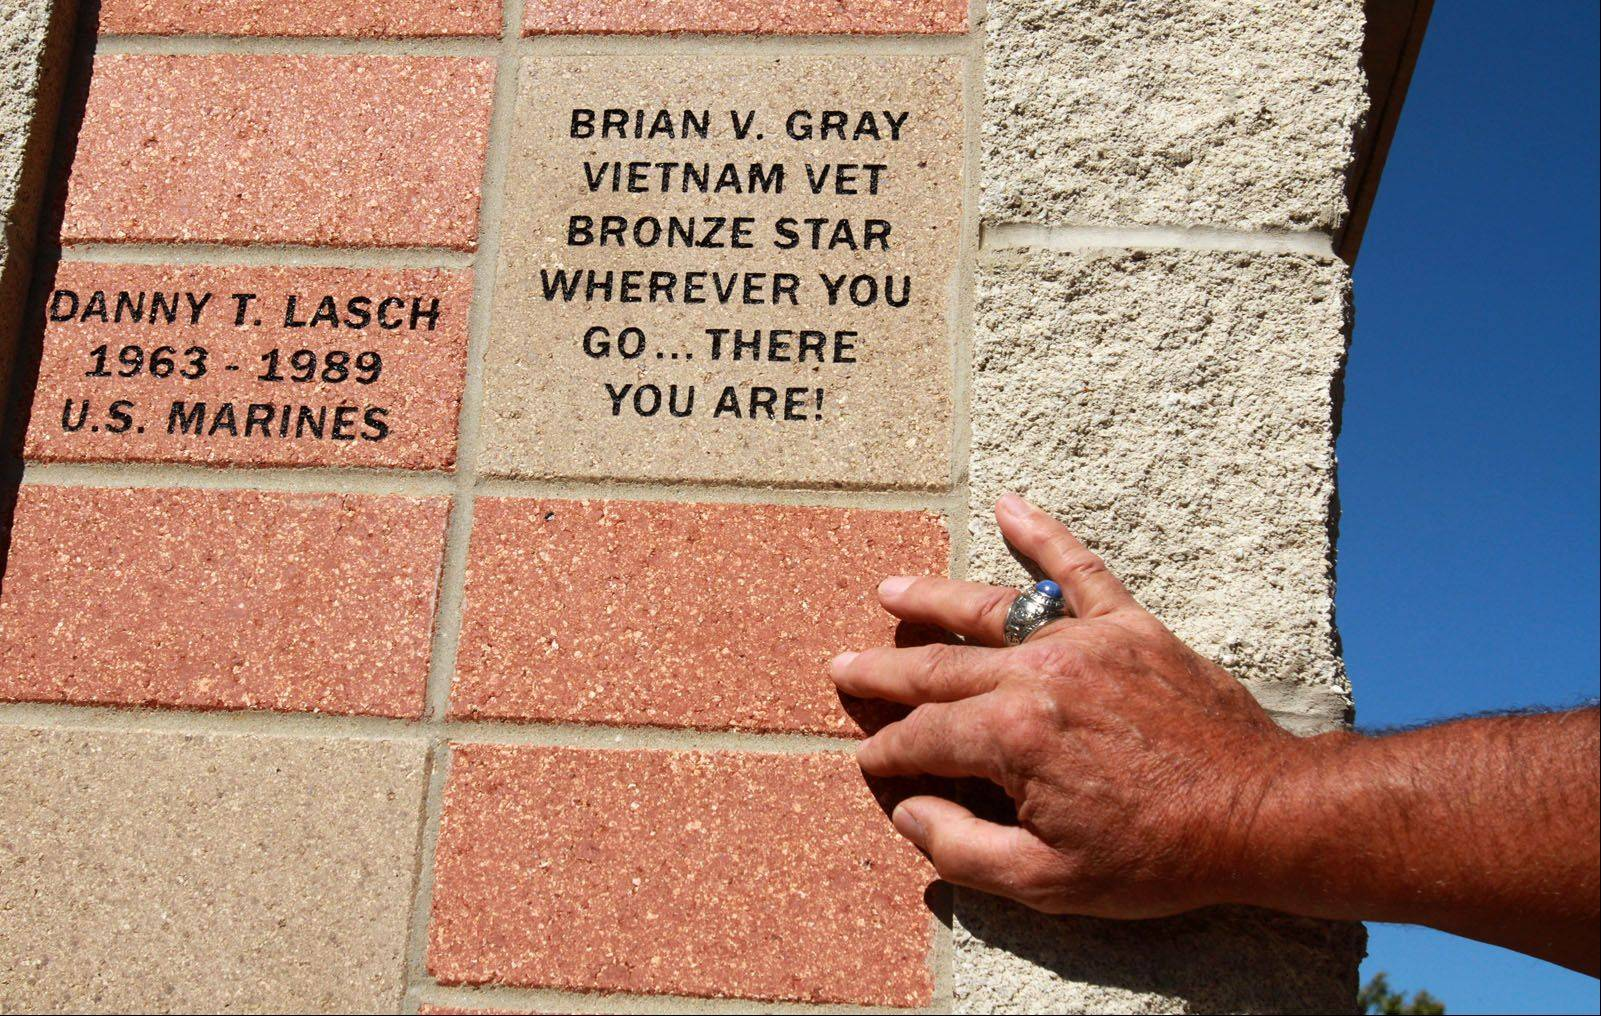 Bill Starr, a retired Army lieutenant colonel, reads a brick on the new veterans memorial. Starr, who served in Vietnam, Bosnia and Kosovo has a brick with his name on it, and is one of several speakers on Saturday.